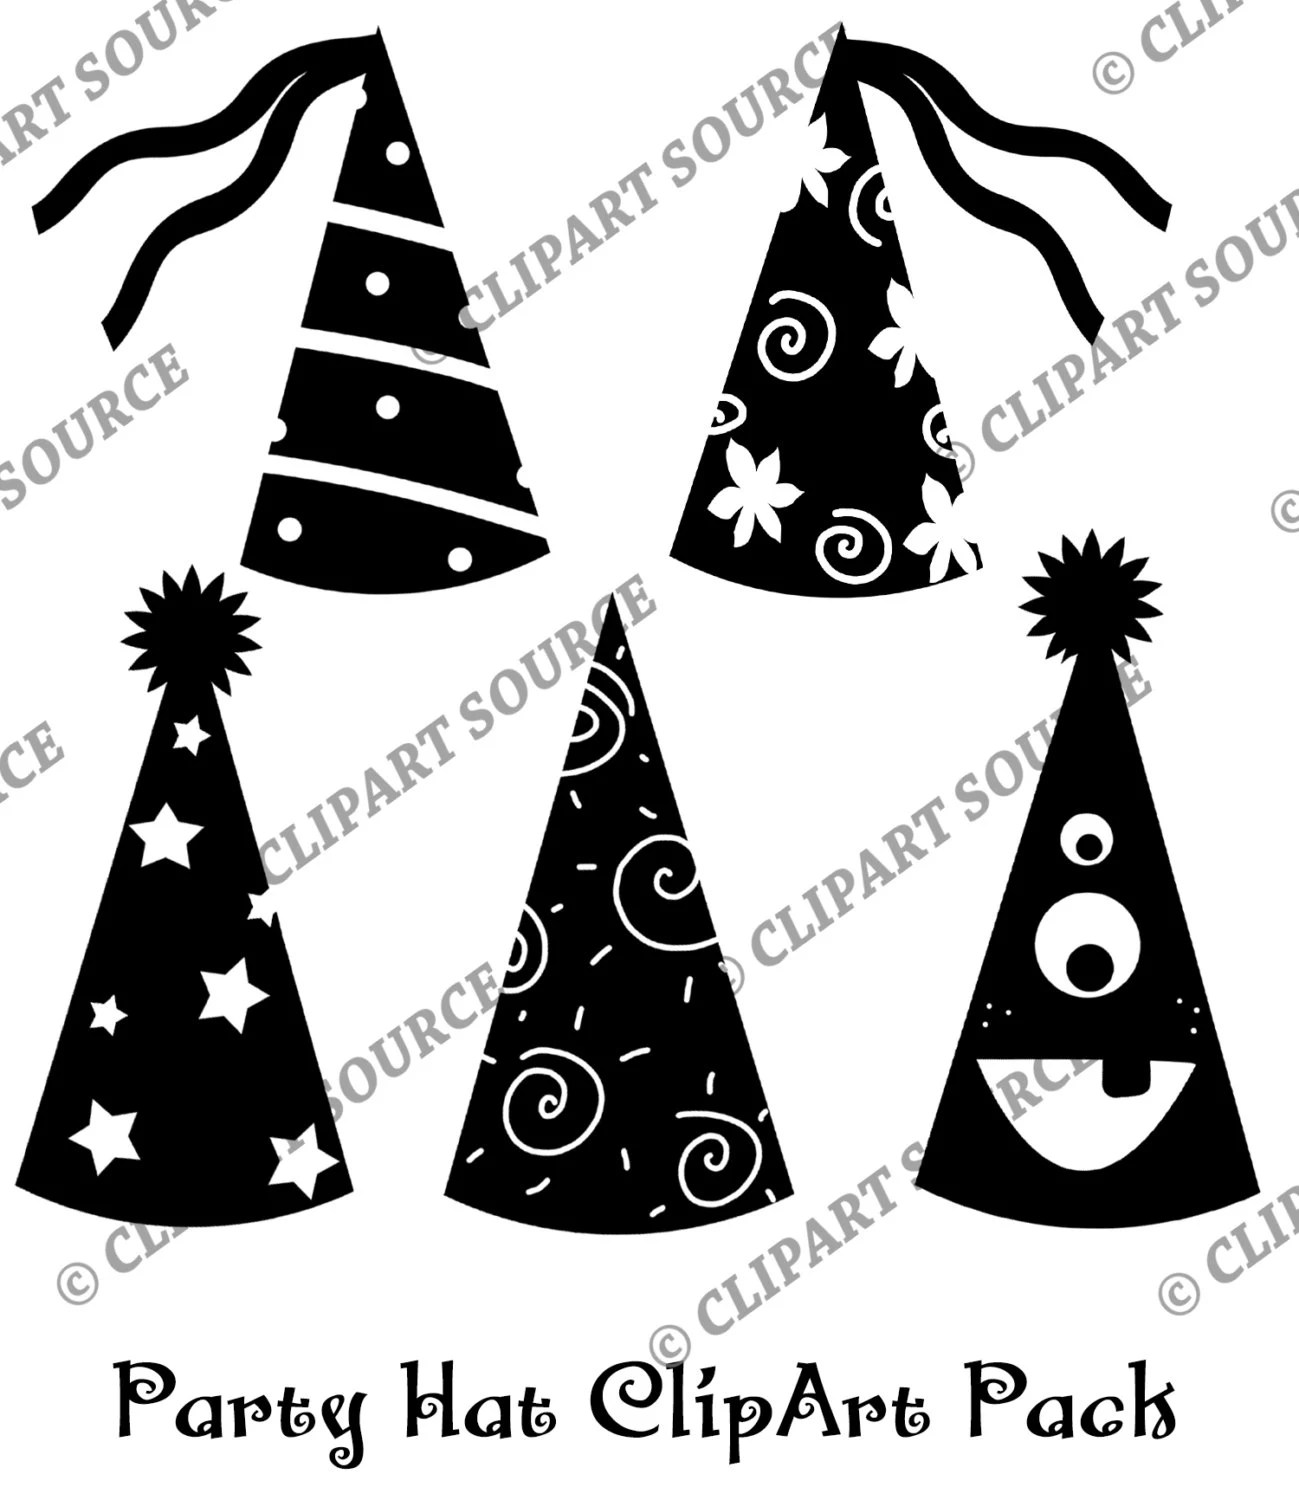 Party Hat Clipart Black And White Clip Art Party Hat Silhouette Scrapbooking File Commercial Use